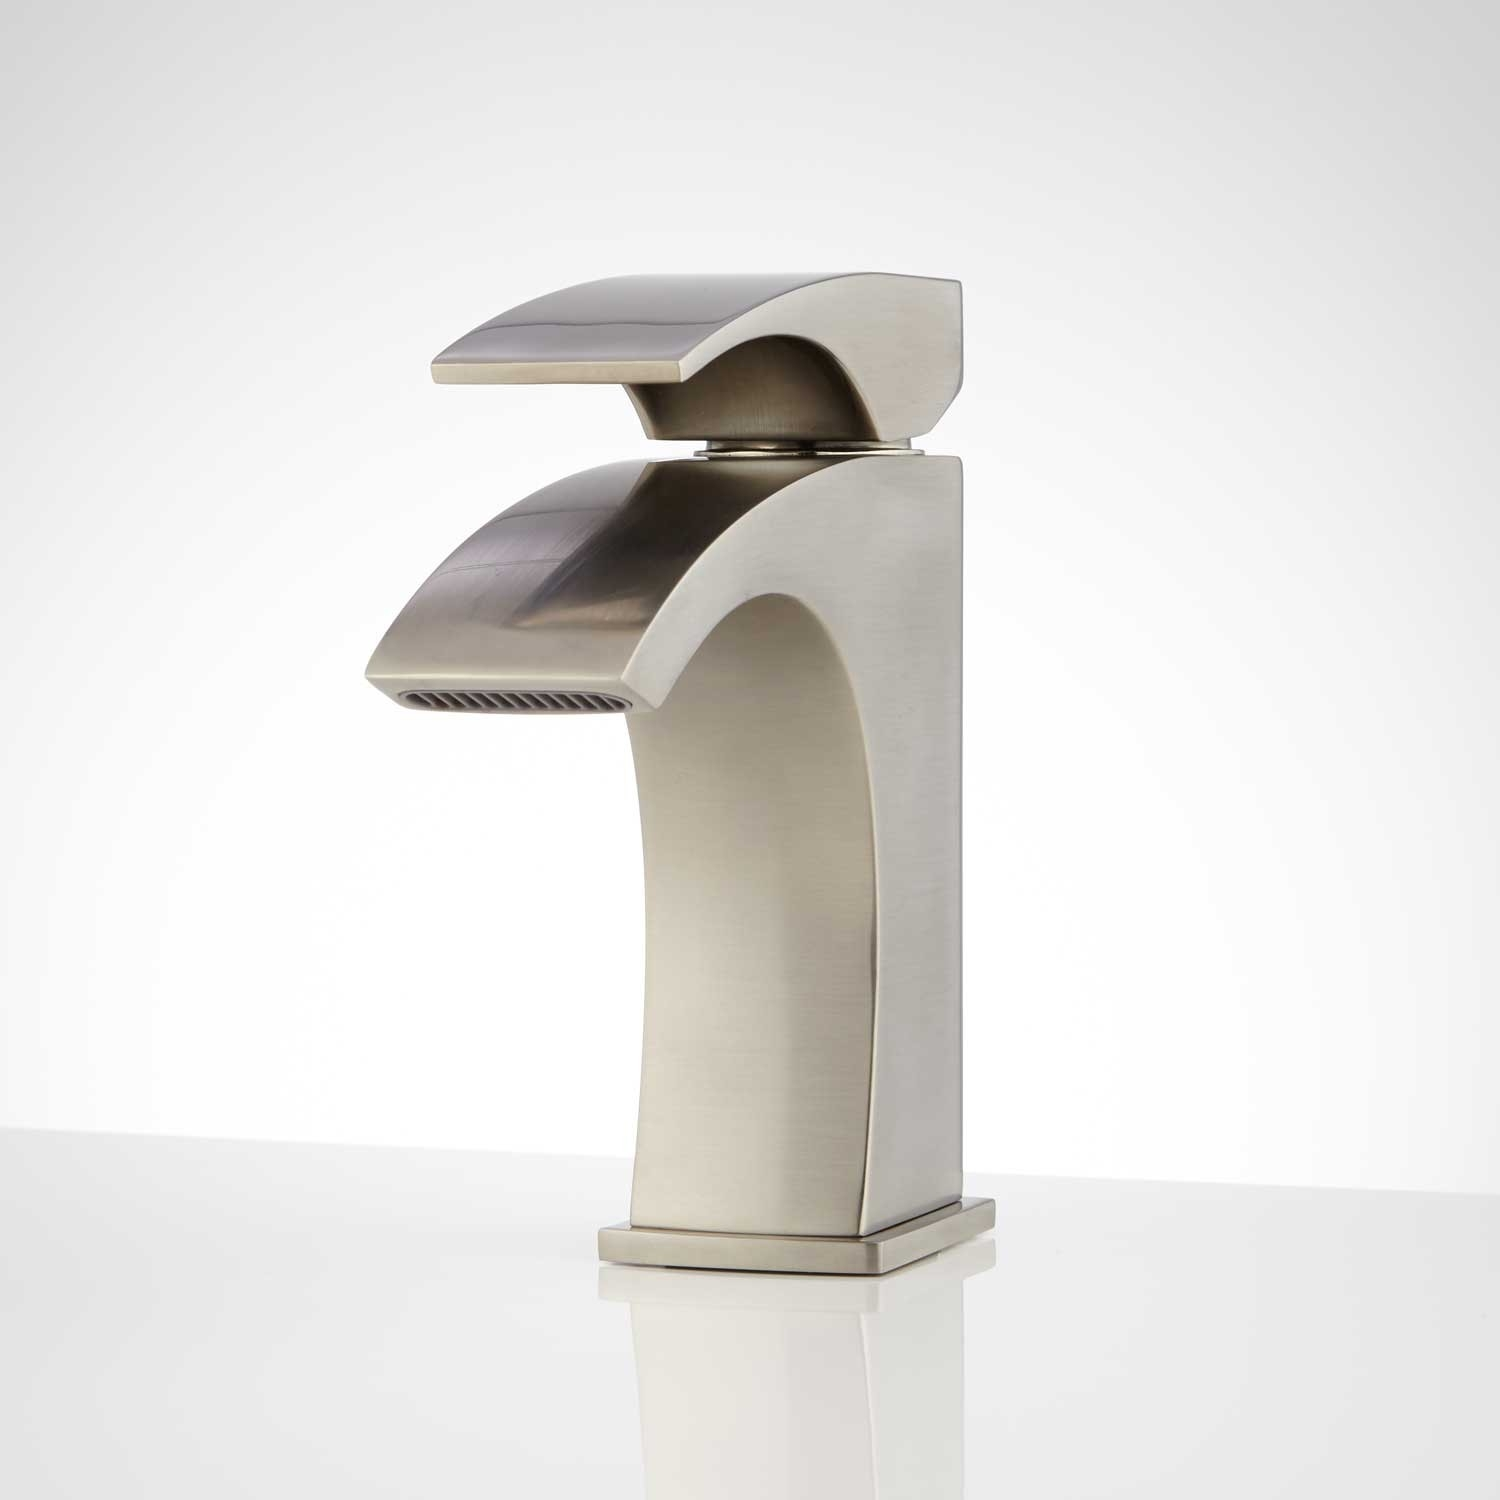 Ideas, montevallo single hole bathroom faucet with pop up drain bathroom for proportions 1500 x 1500 1  .